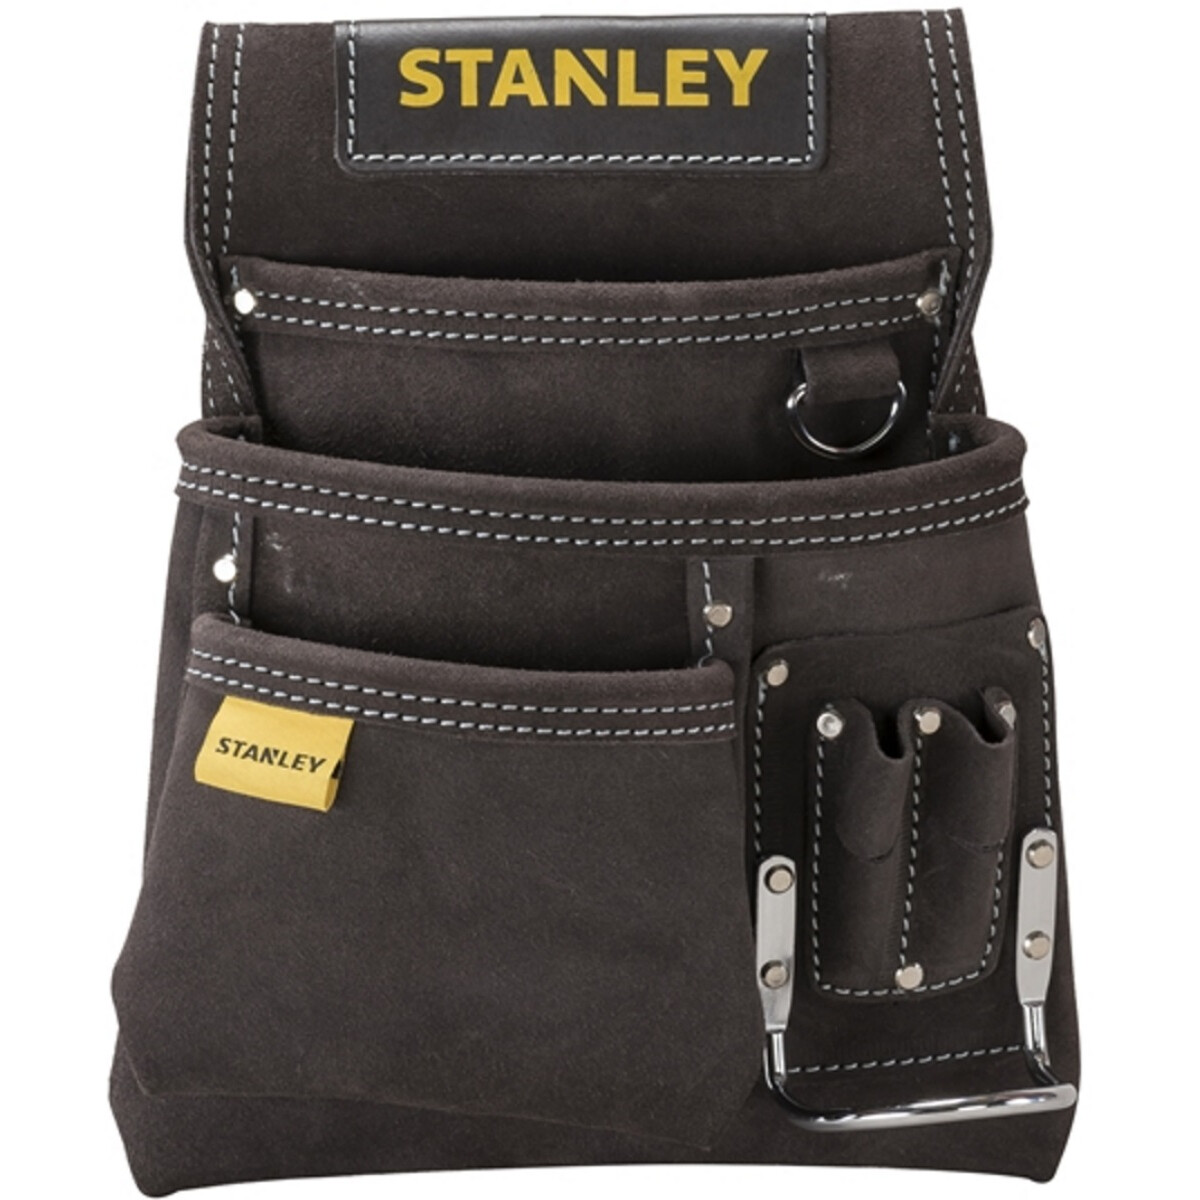 Stanley STST1-80114 Leather Nail & Hammer Pouch STA180114